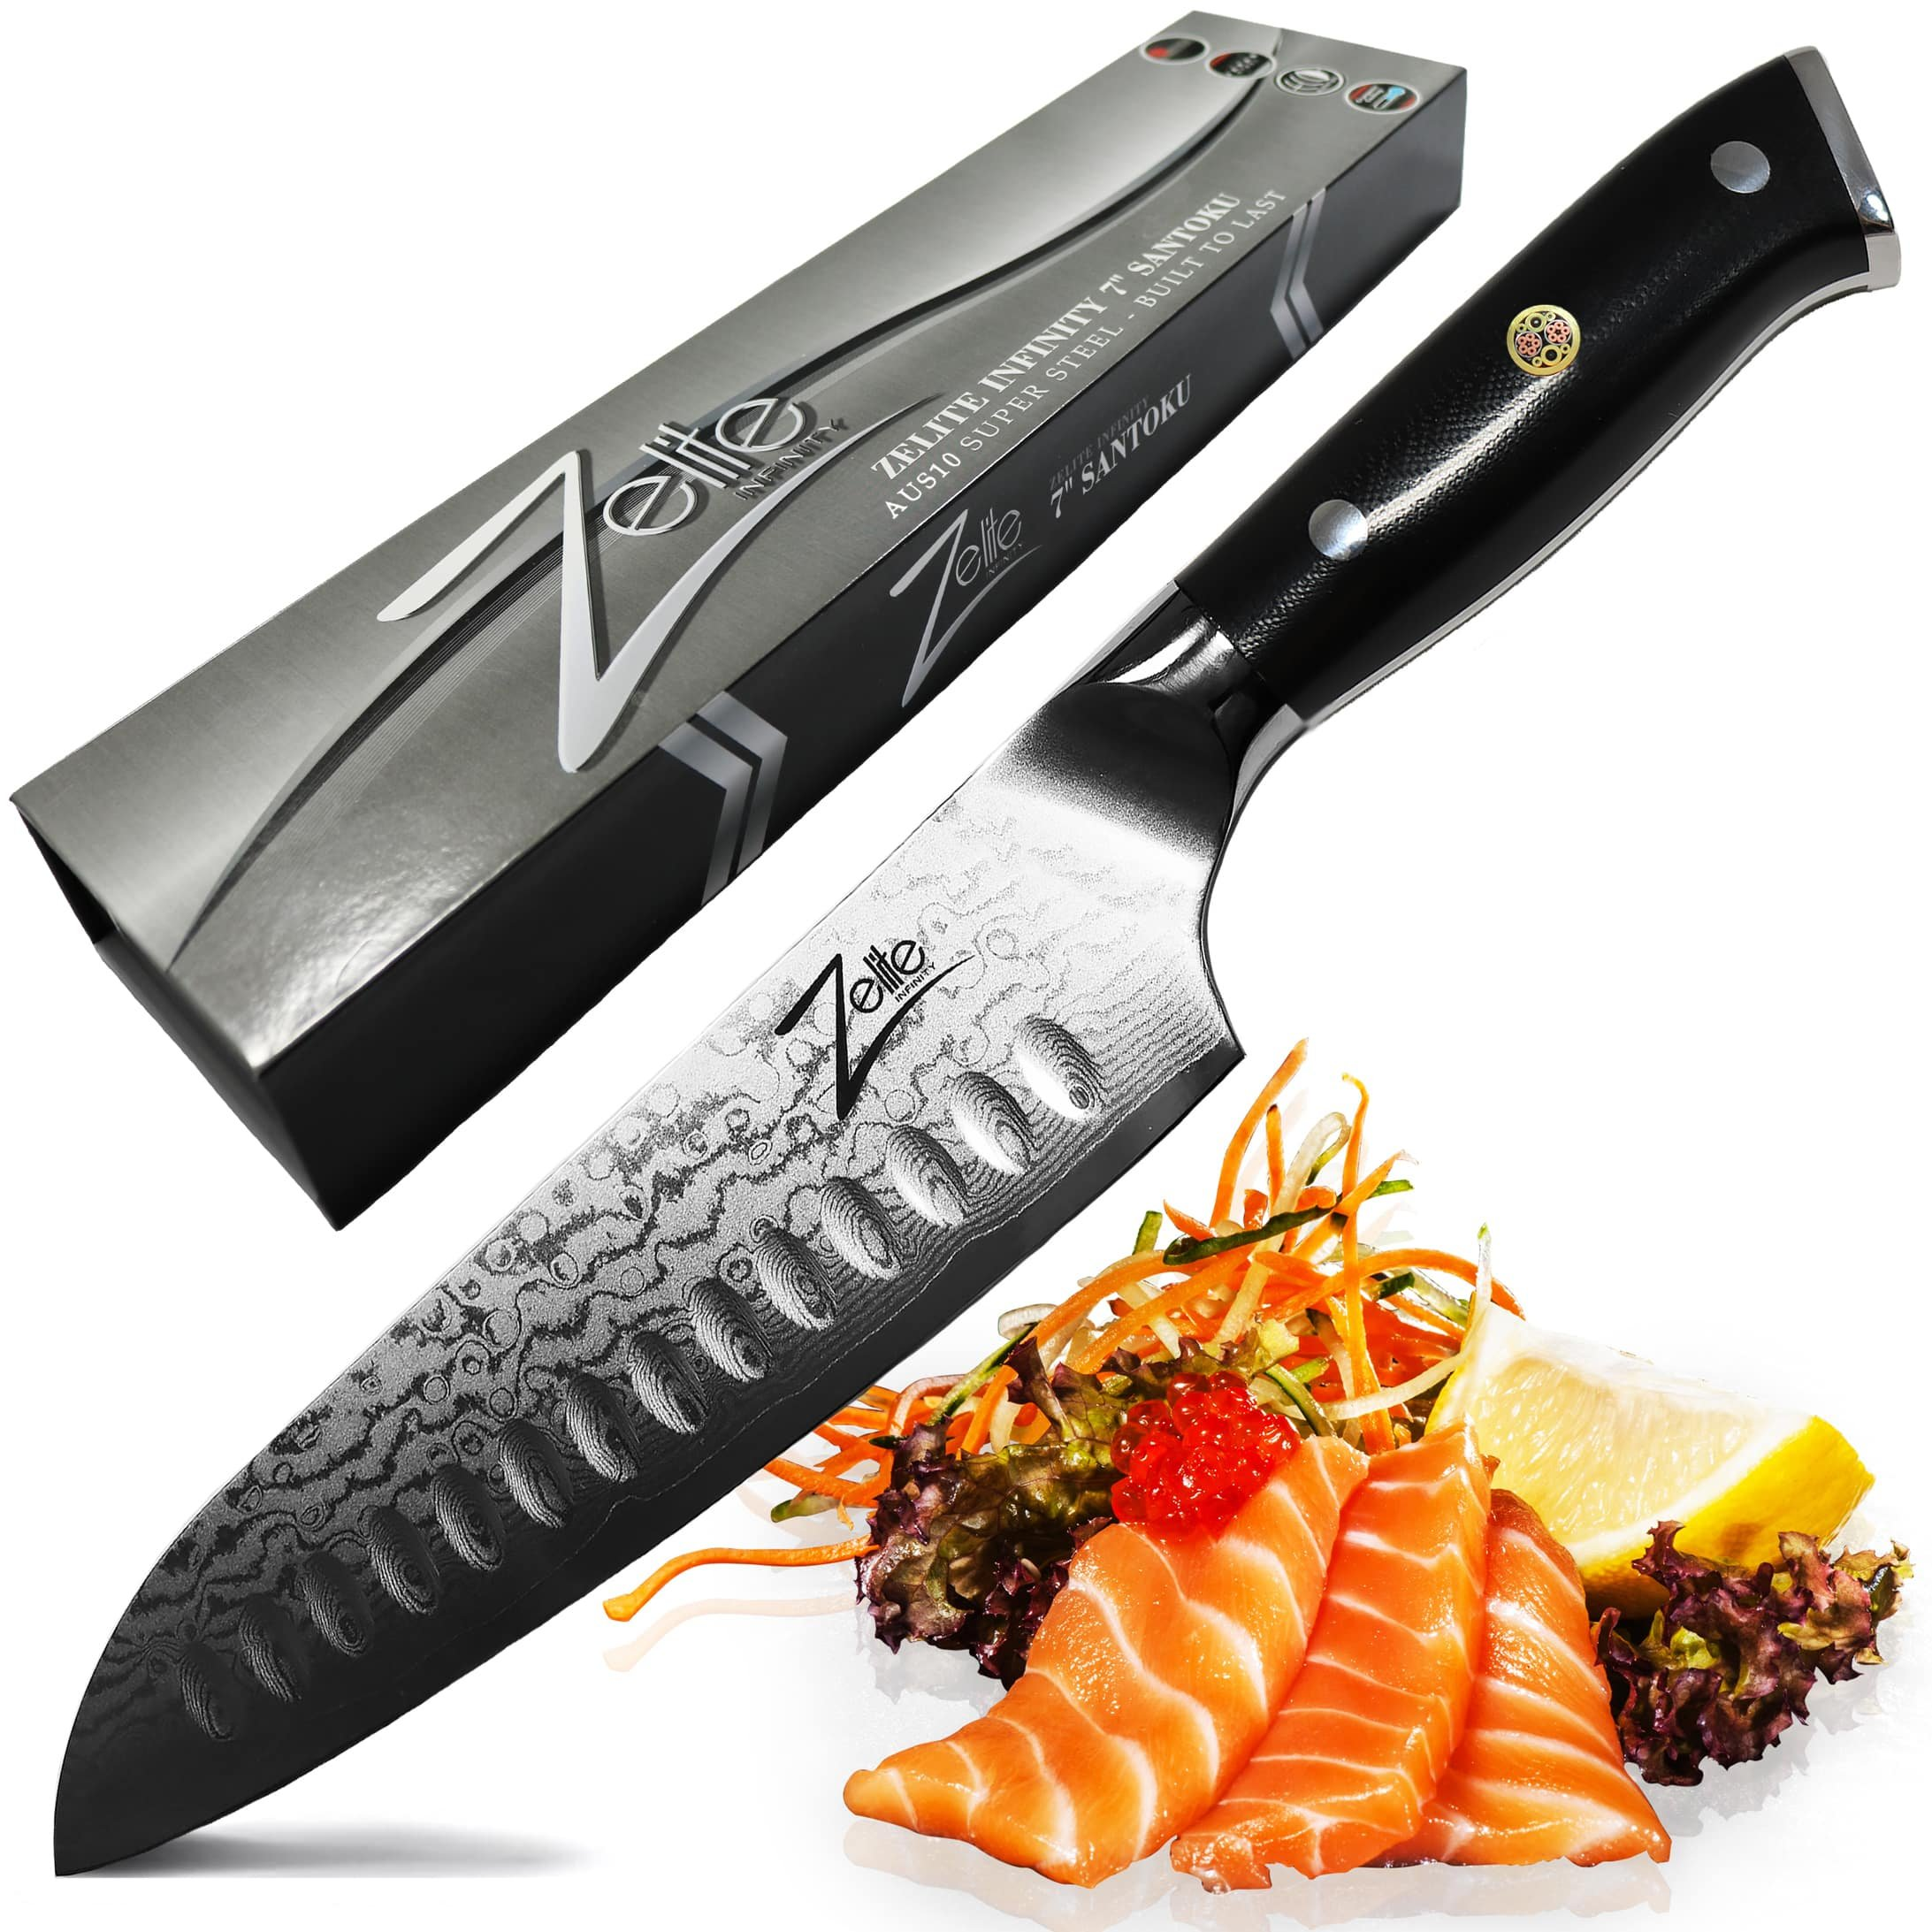 ZELITE INFINITY Santoku Knife 7 Inch - Alpha-Royal Series - Best Quality Japanese VG10 Super Steel 67 Layer High Carbon Stainless Steel, Incredible G10 Handle, Full-tang, Razor Sharp Chef Blade